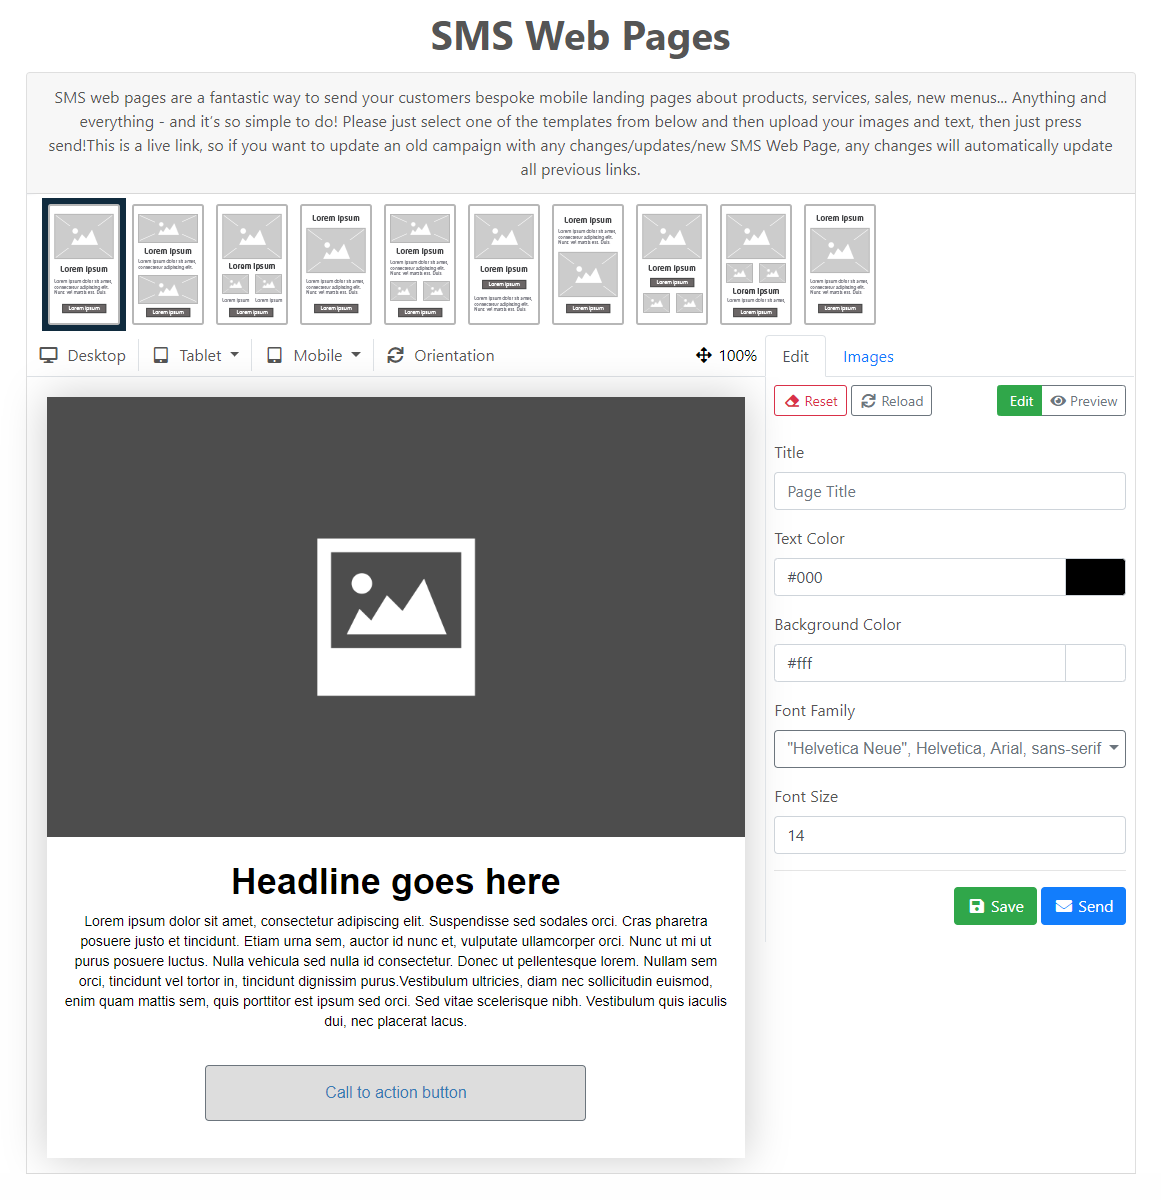 SMS Web Pages - overview